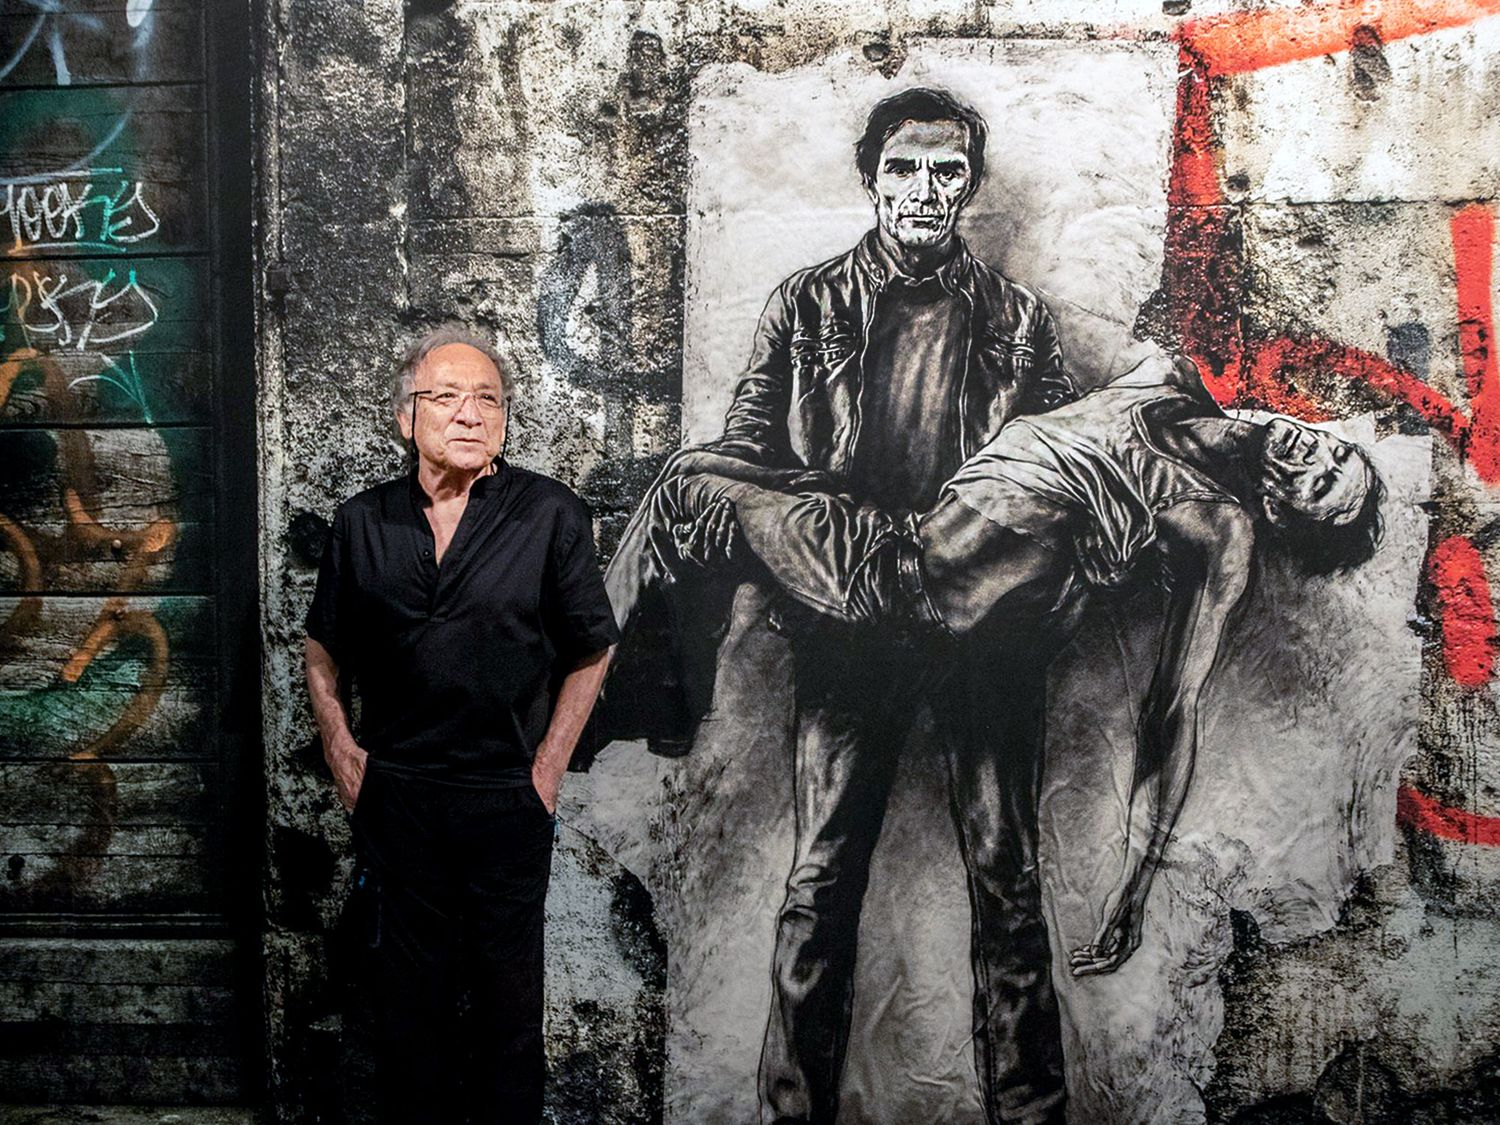 """Ernest Pignon-Ernest next to its iconic portrait of Pasolini during the exhibition """"Ecce Homo"""" in Avignon (2019-2020) which celebrated more than 50 years of artistic expression (©MAXPPP)."""